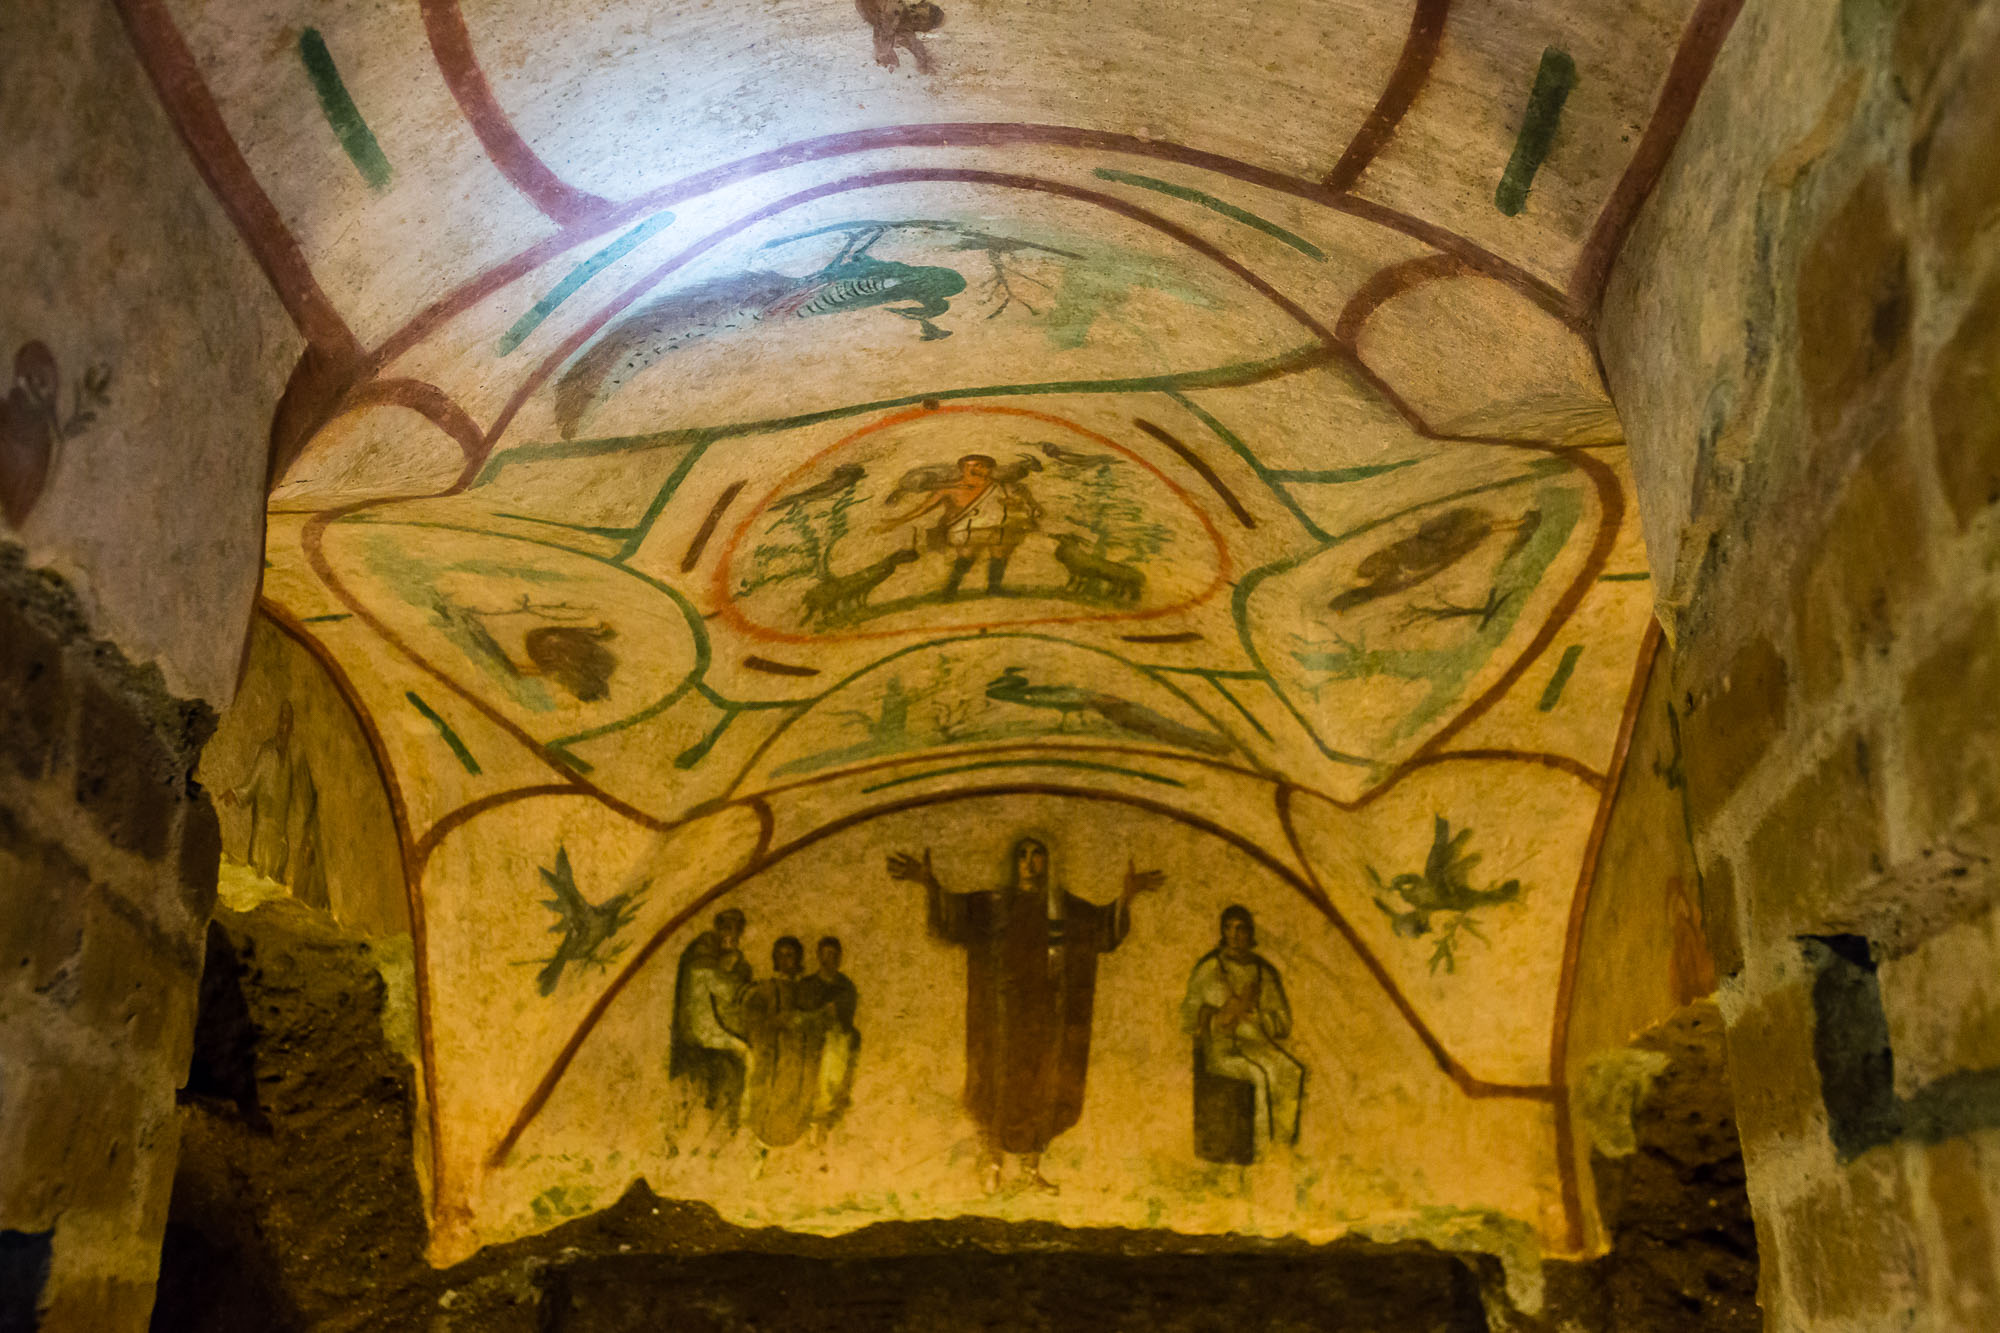 A fresco in the catacombs of priscilla, taken by Ben Lee, a derbyshire based photographer on his trip to Rome.